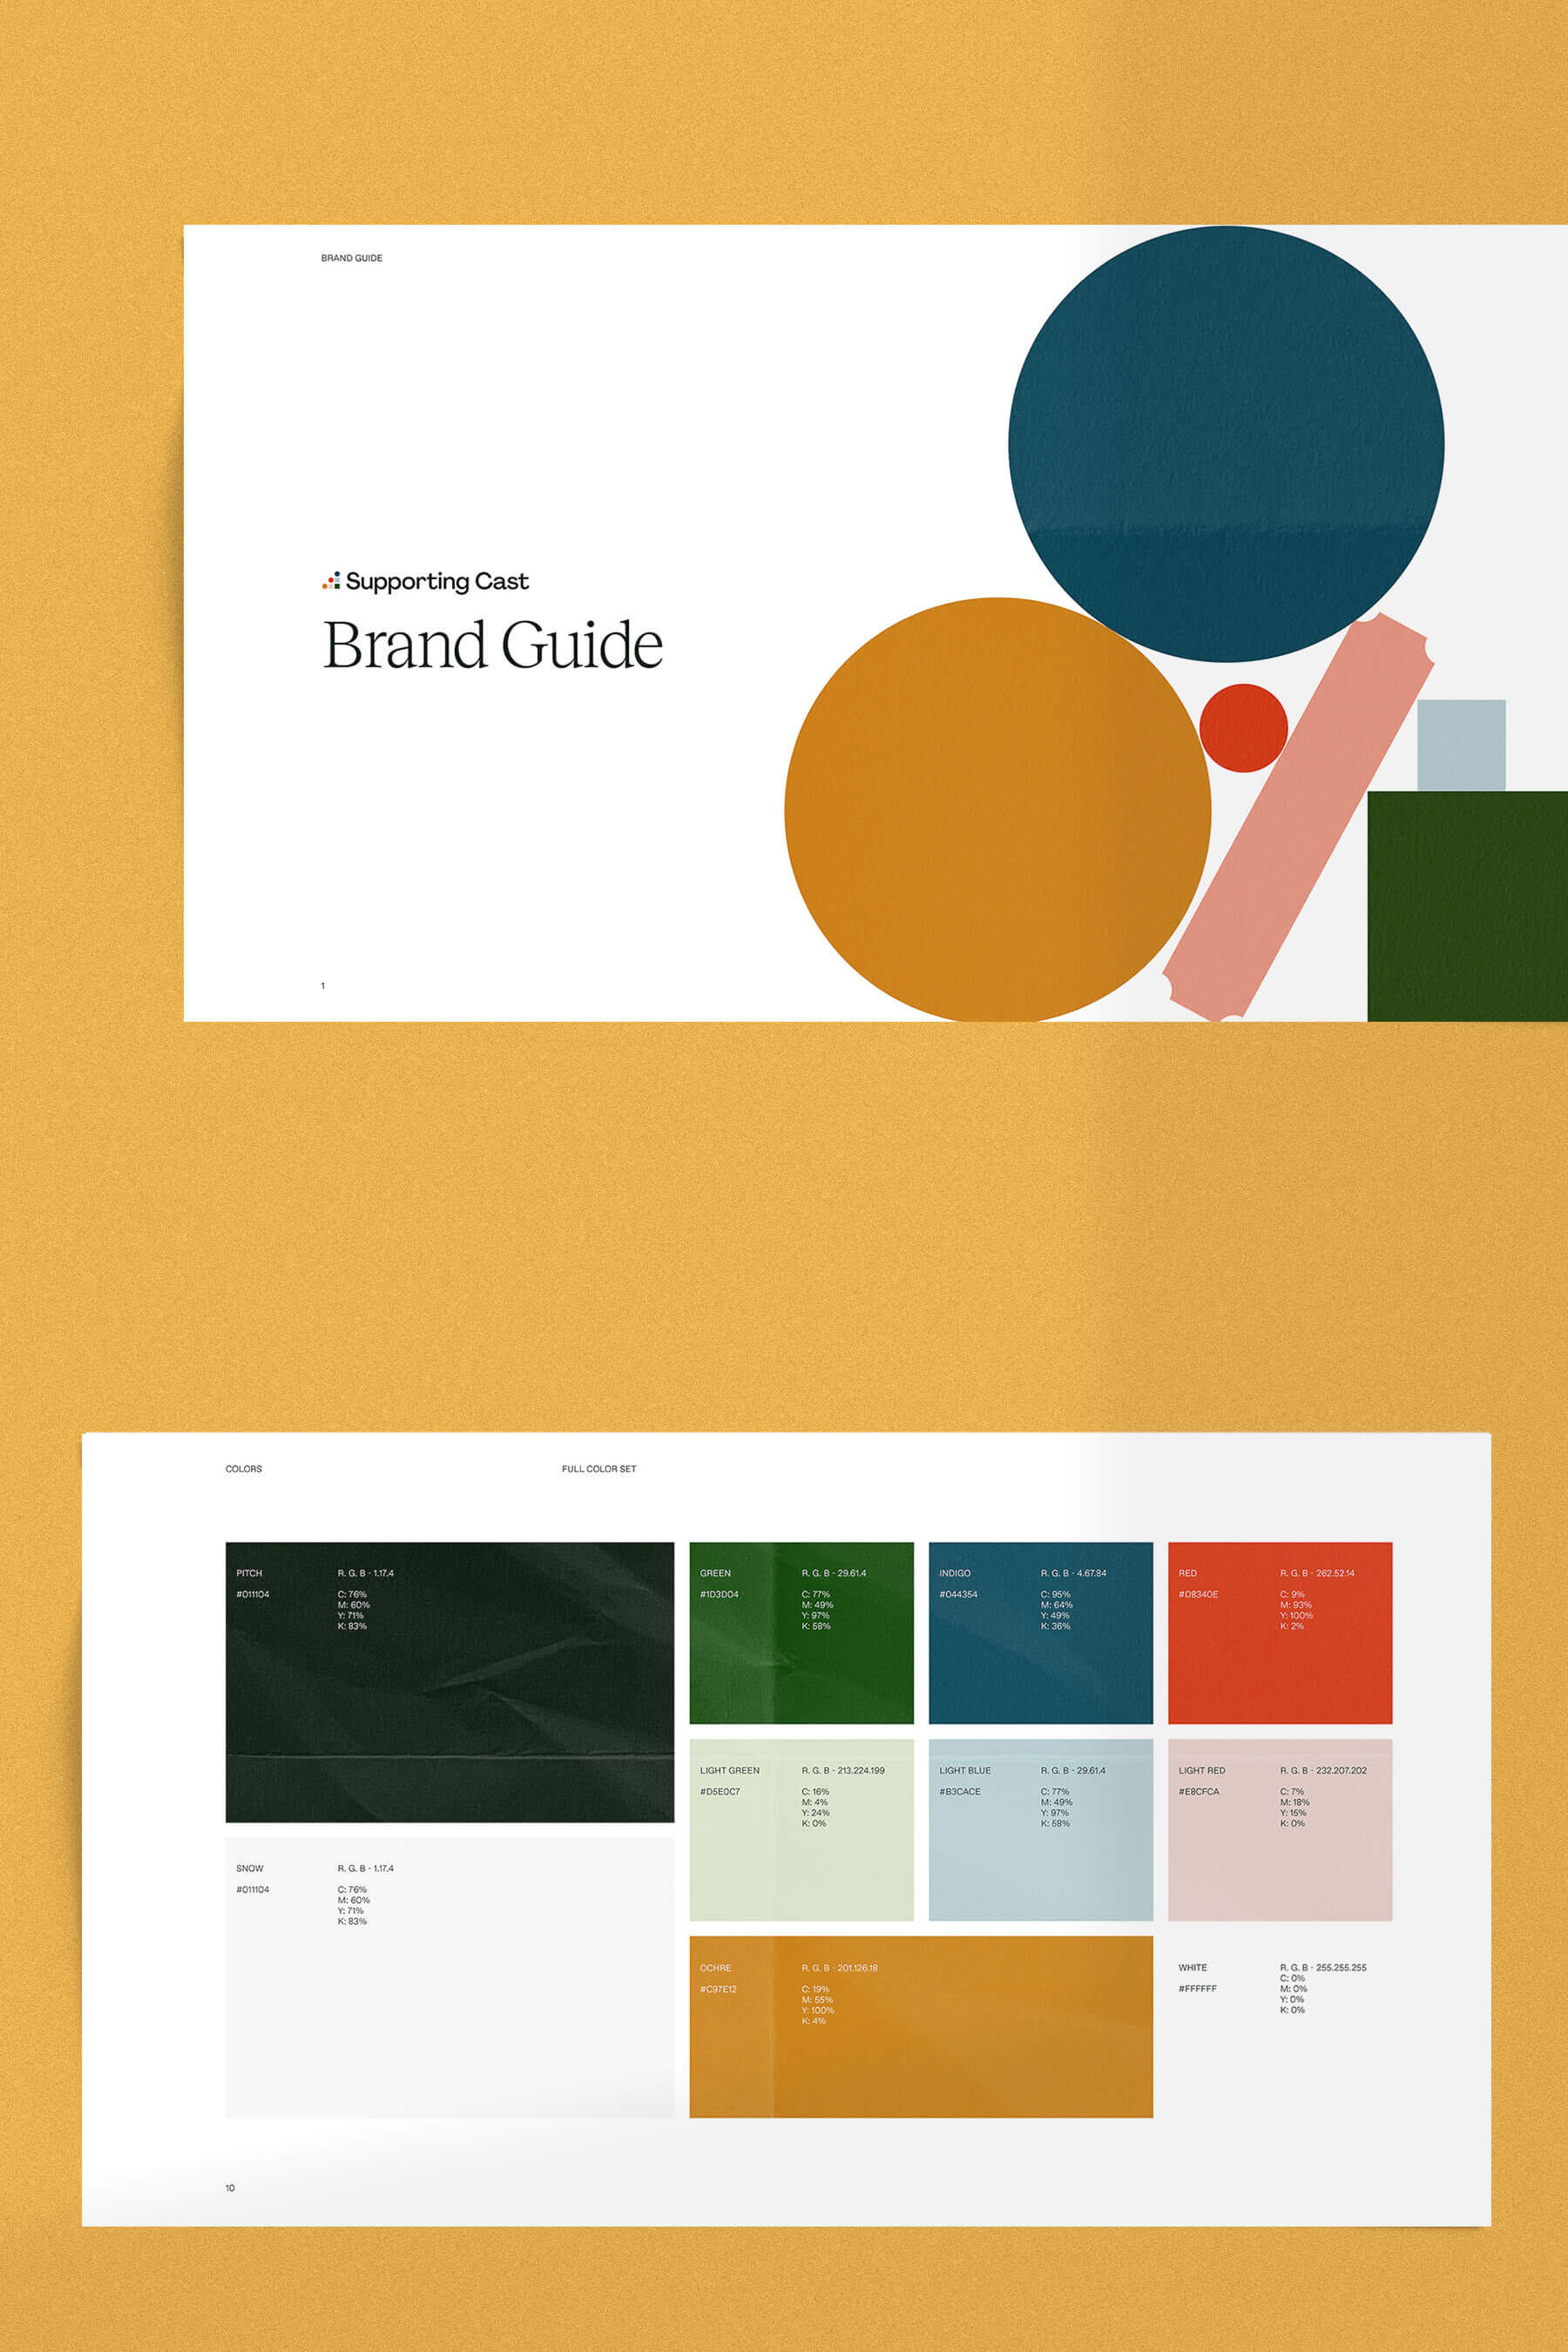 Brand guide snippets.